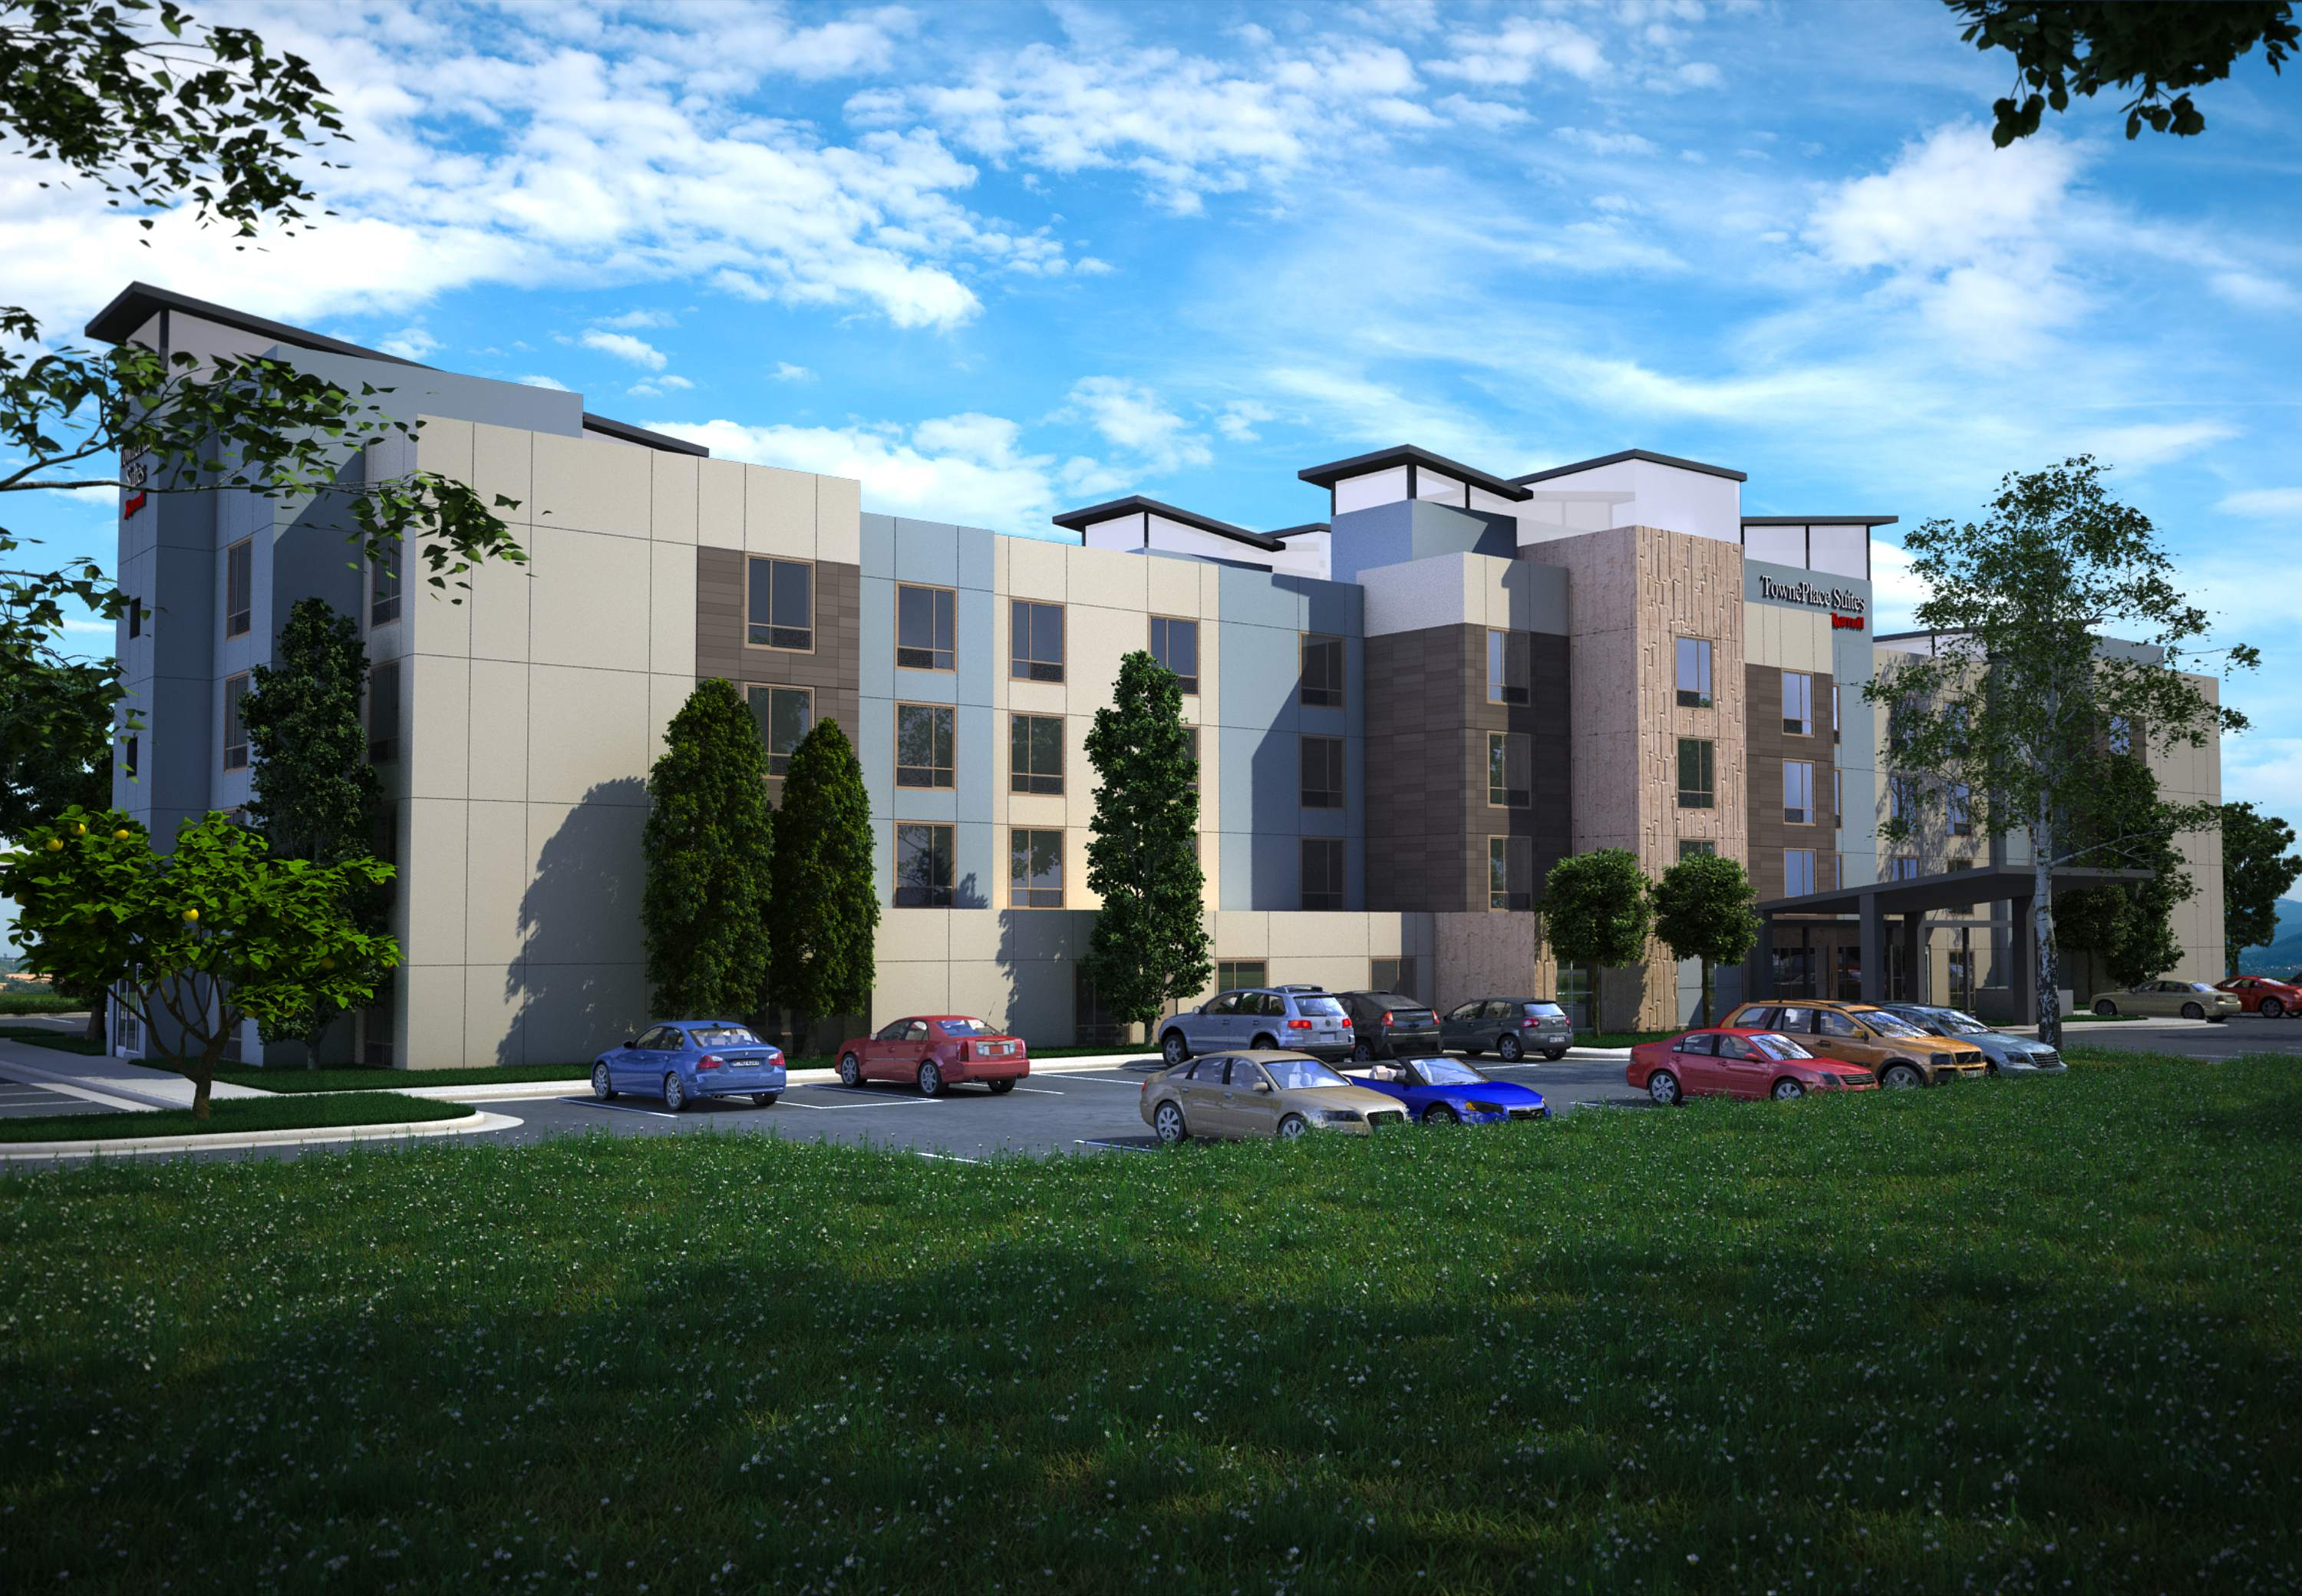 TownePlace Suites by Marriott Kansas City Airport image 1